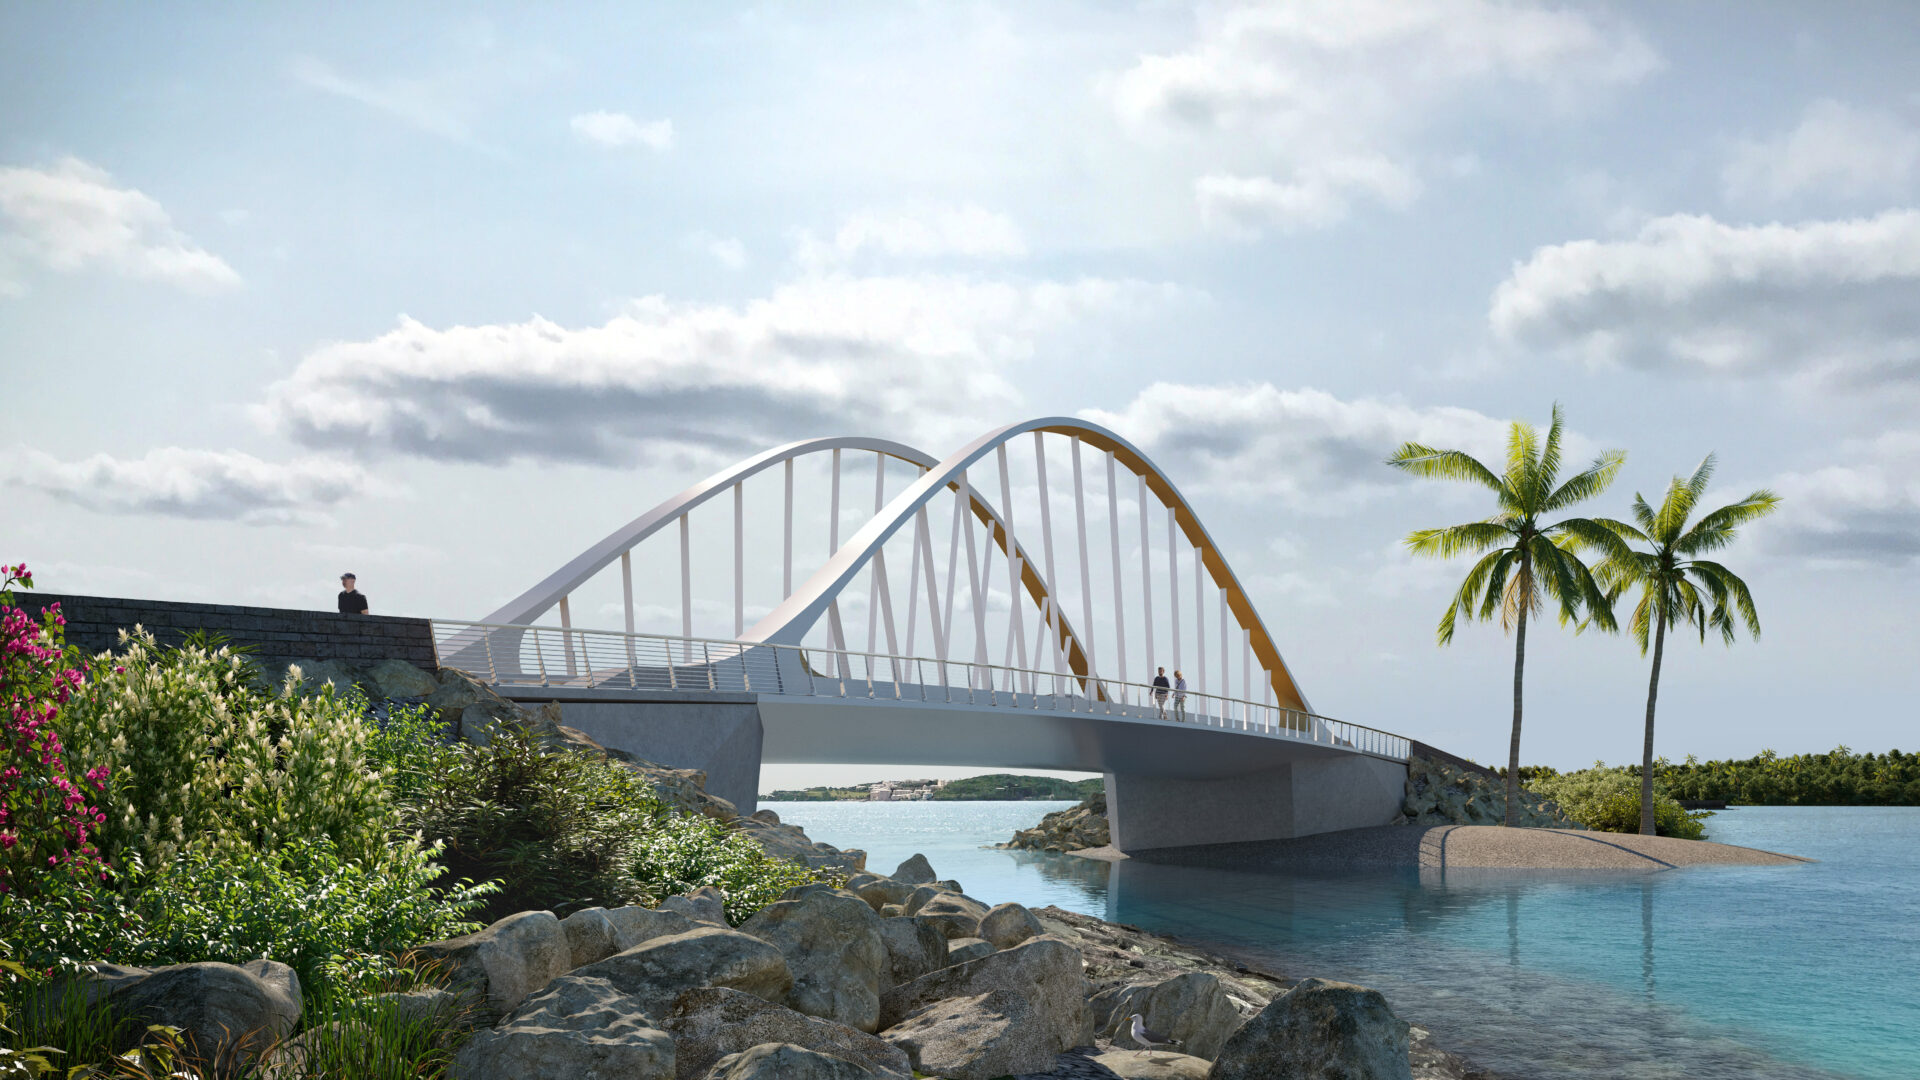 Modern suspension bridge with palm trees and sky